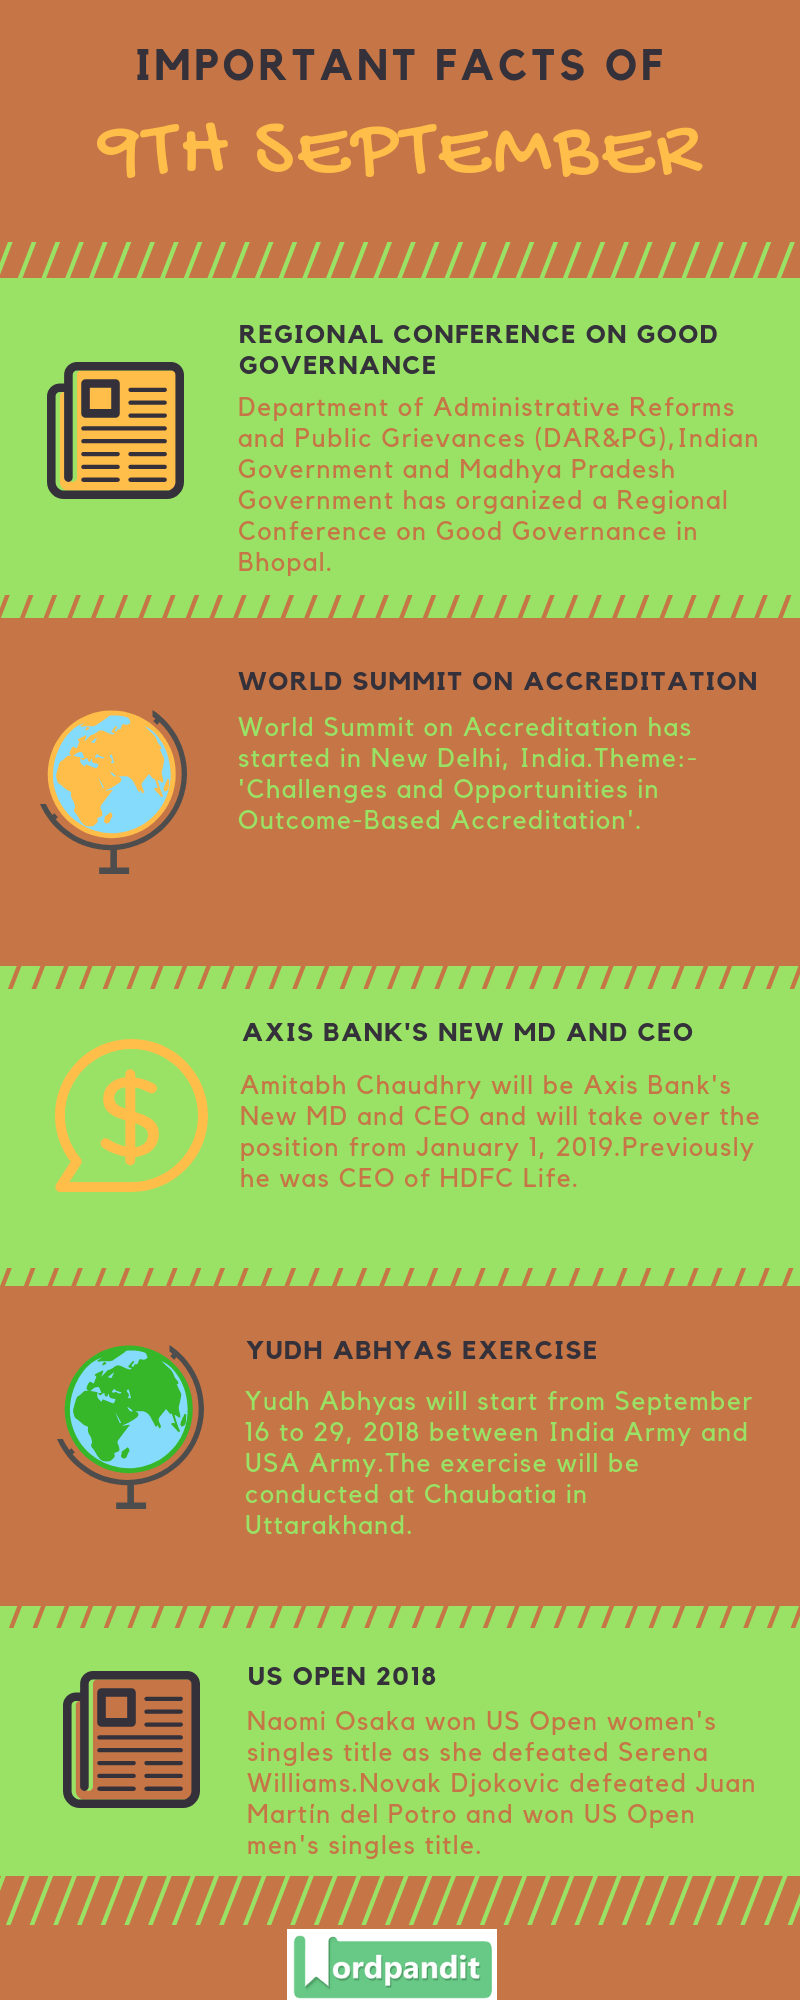 Daily Current Affairs 9 September 2018 Current Affairs Quiz 9 September 2018 Current Affairs Infographic